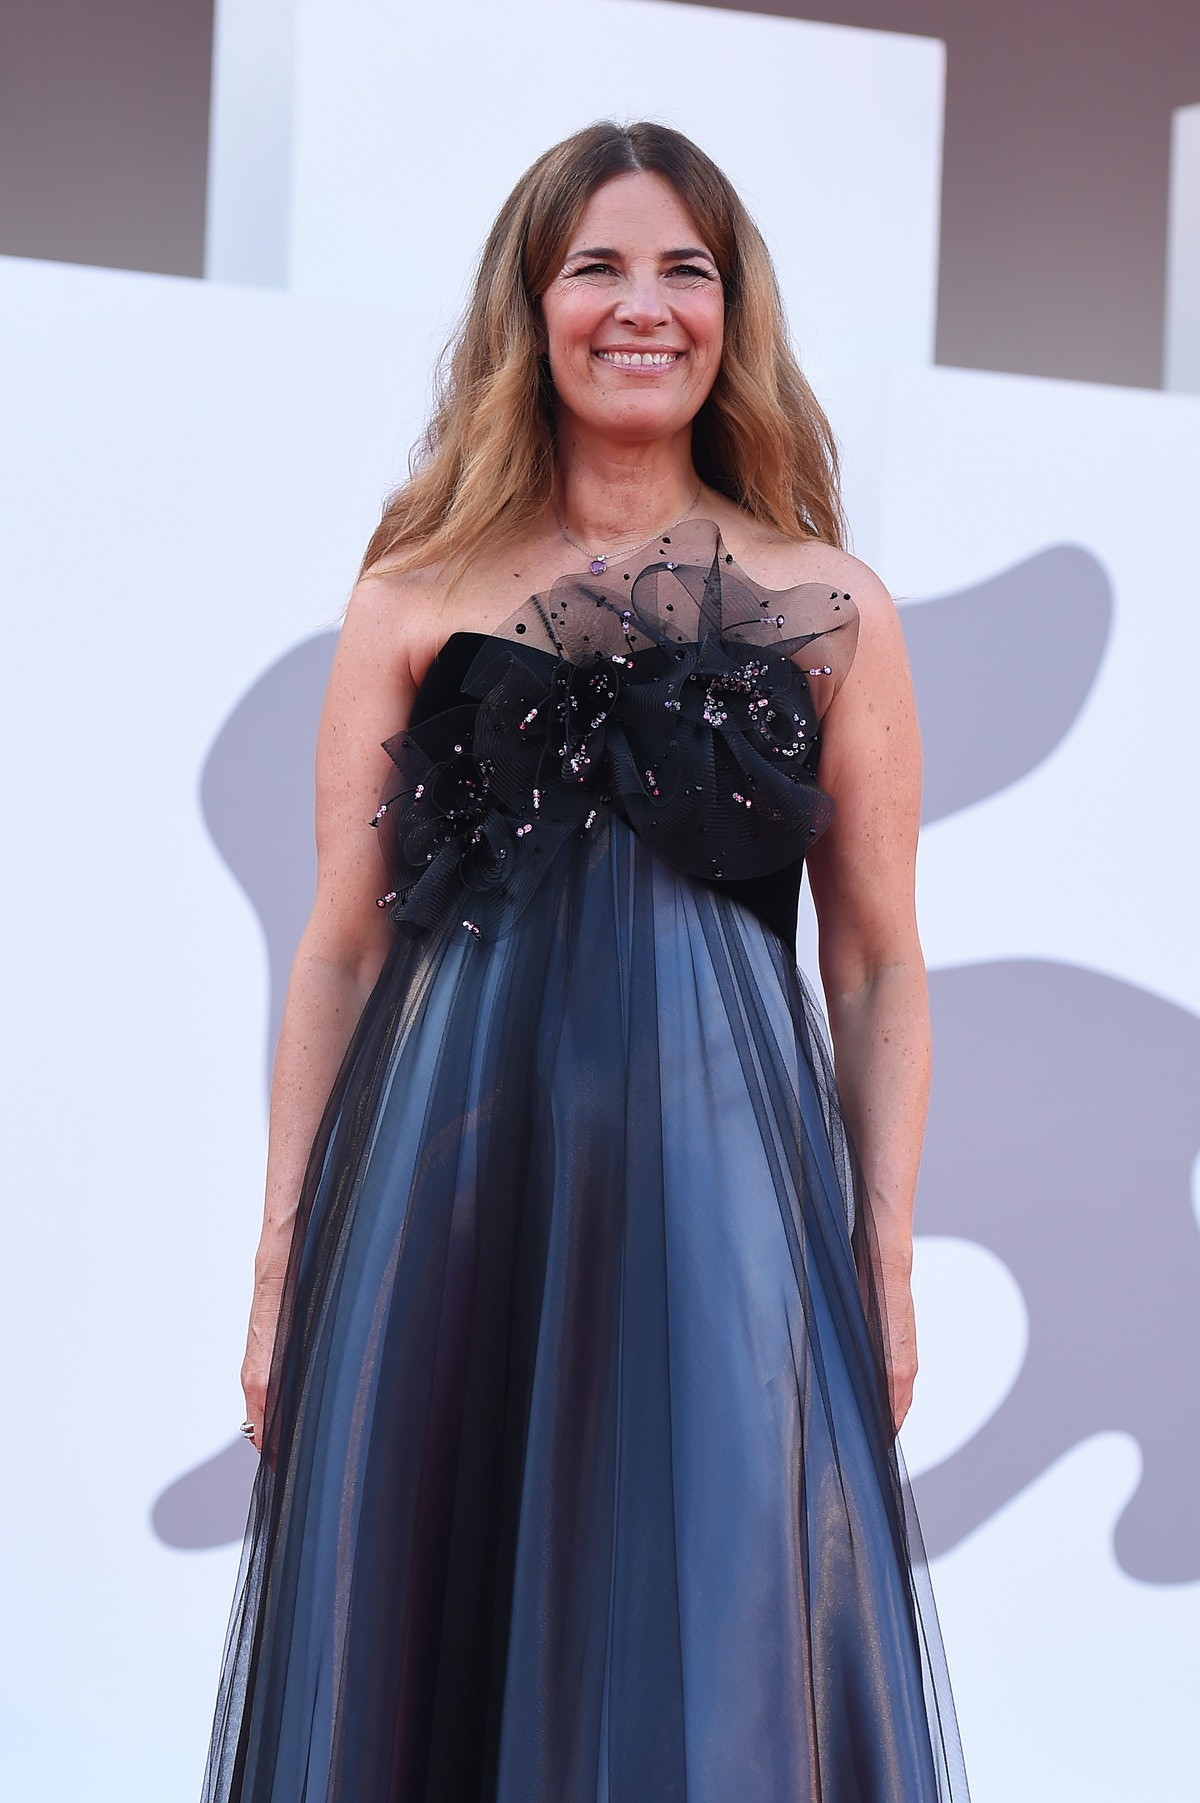 Roberta Armani attends the closing ceremony red carpet during the 78th Venice International Film Fes...